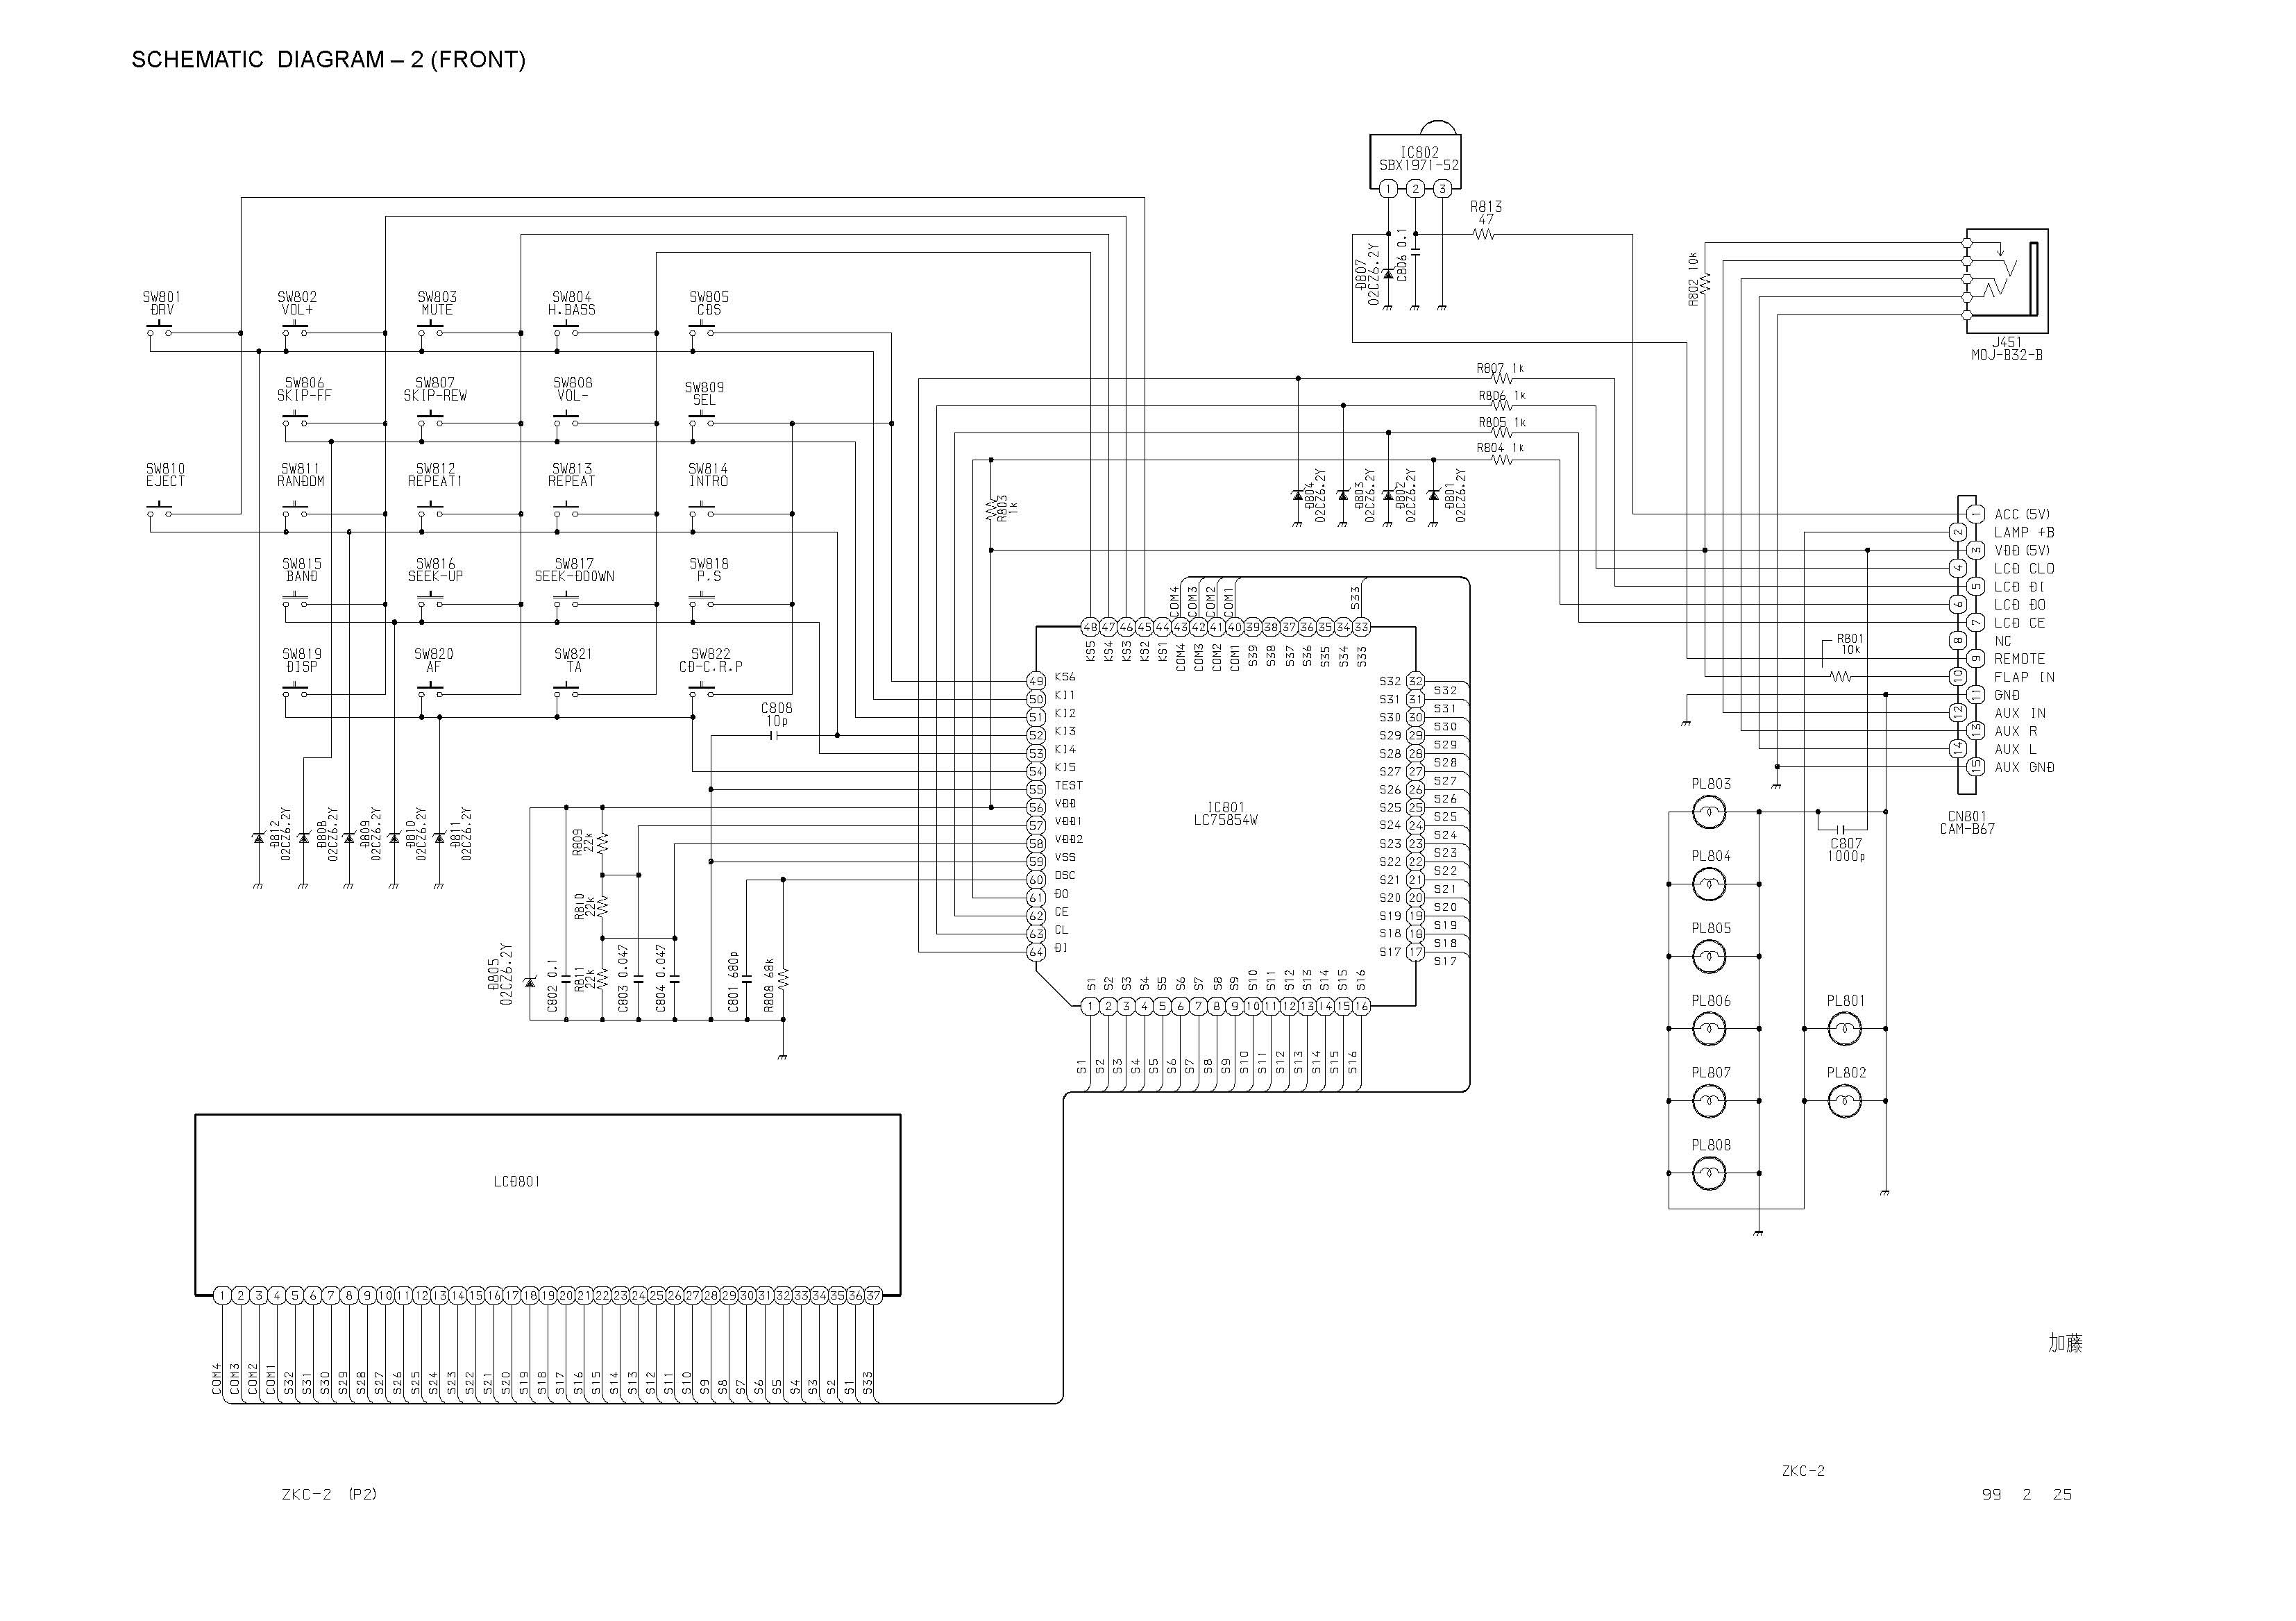 Aiwa Cdc R 146m Schematic Diagram Main Front In